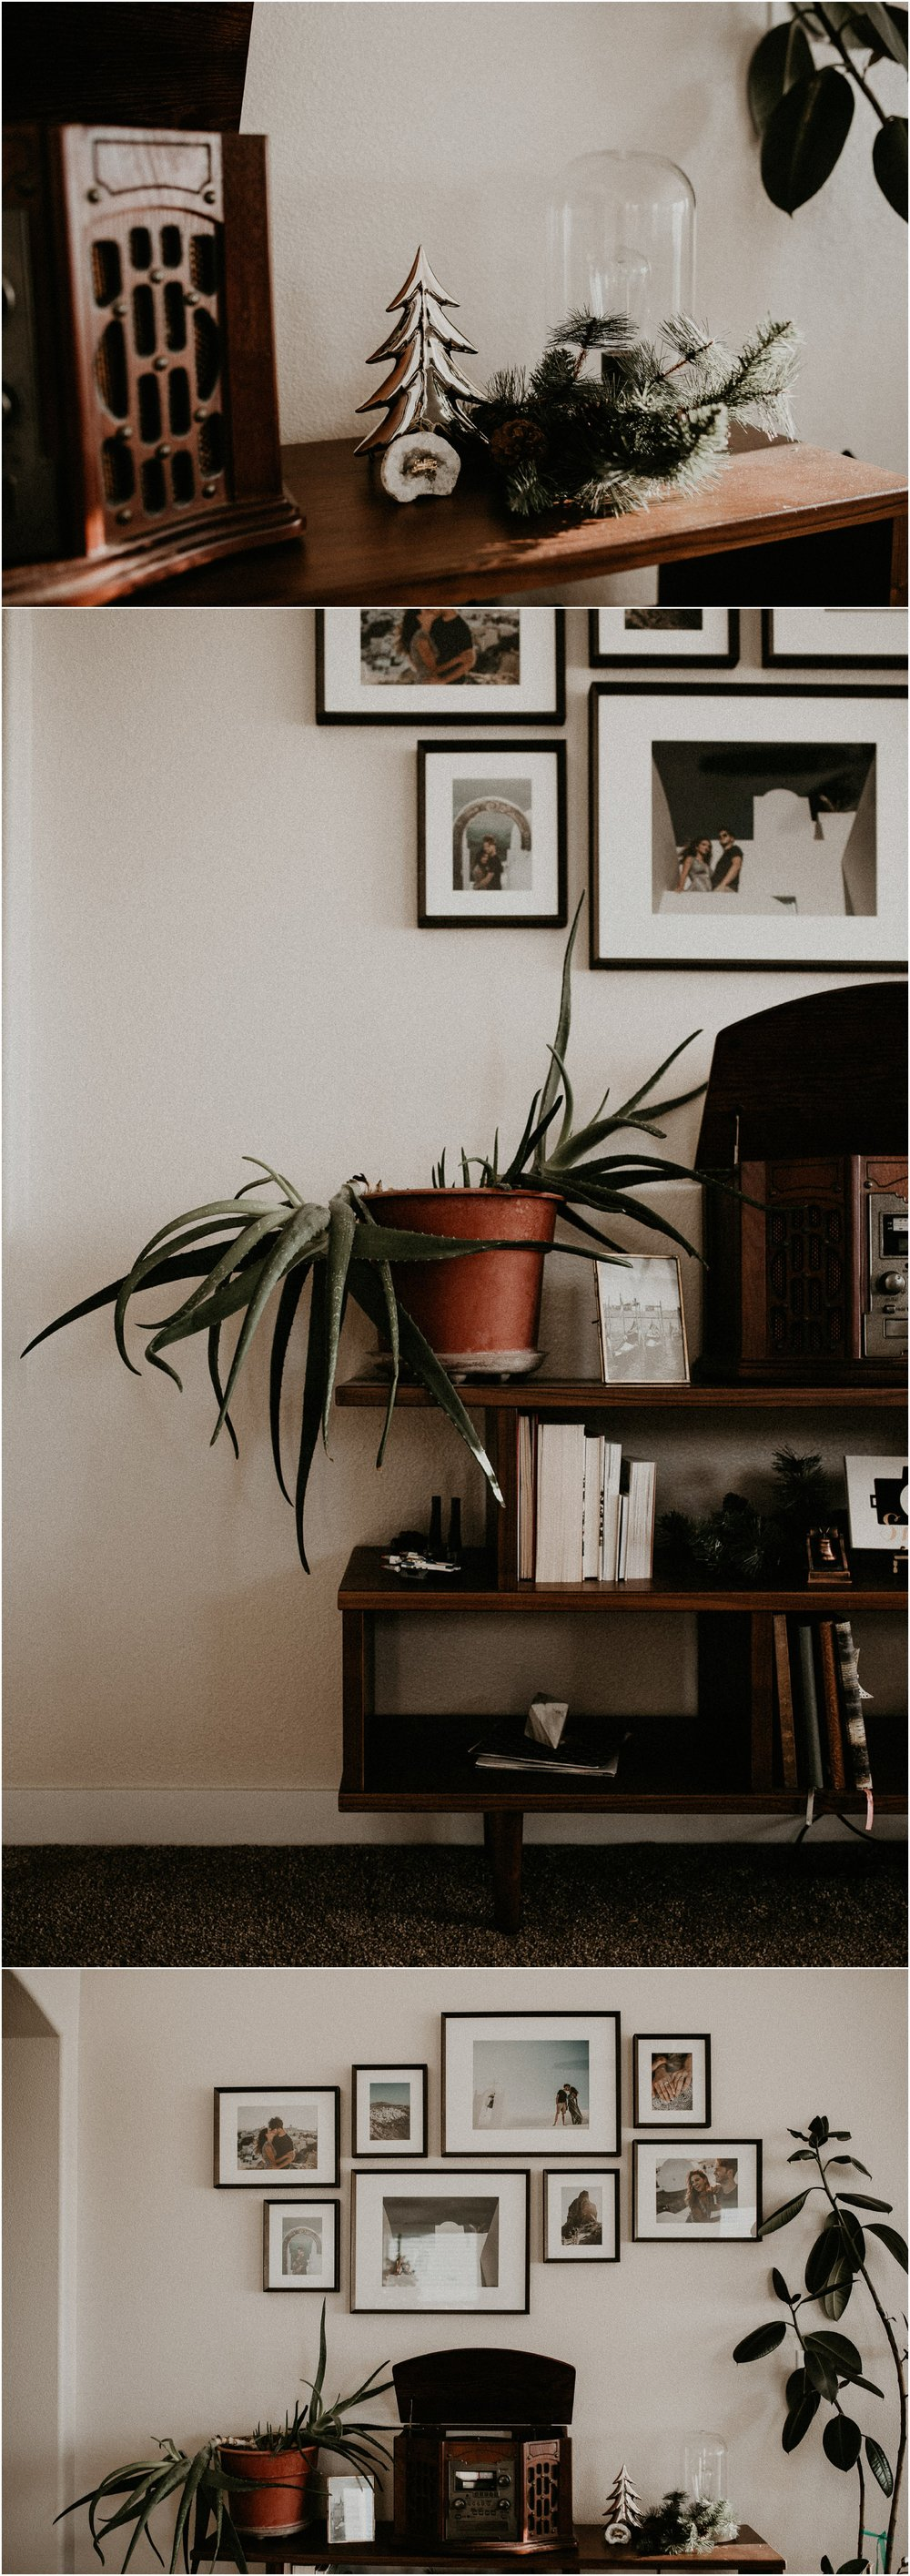 Boise Boudoir Photographer Boise Senior Photographer Makayla Madden Photography Mid Century Modern Ashlyn Bookshelf World Market Aloe Plant Record Player Vinyl